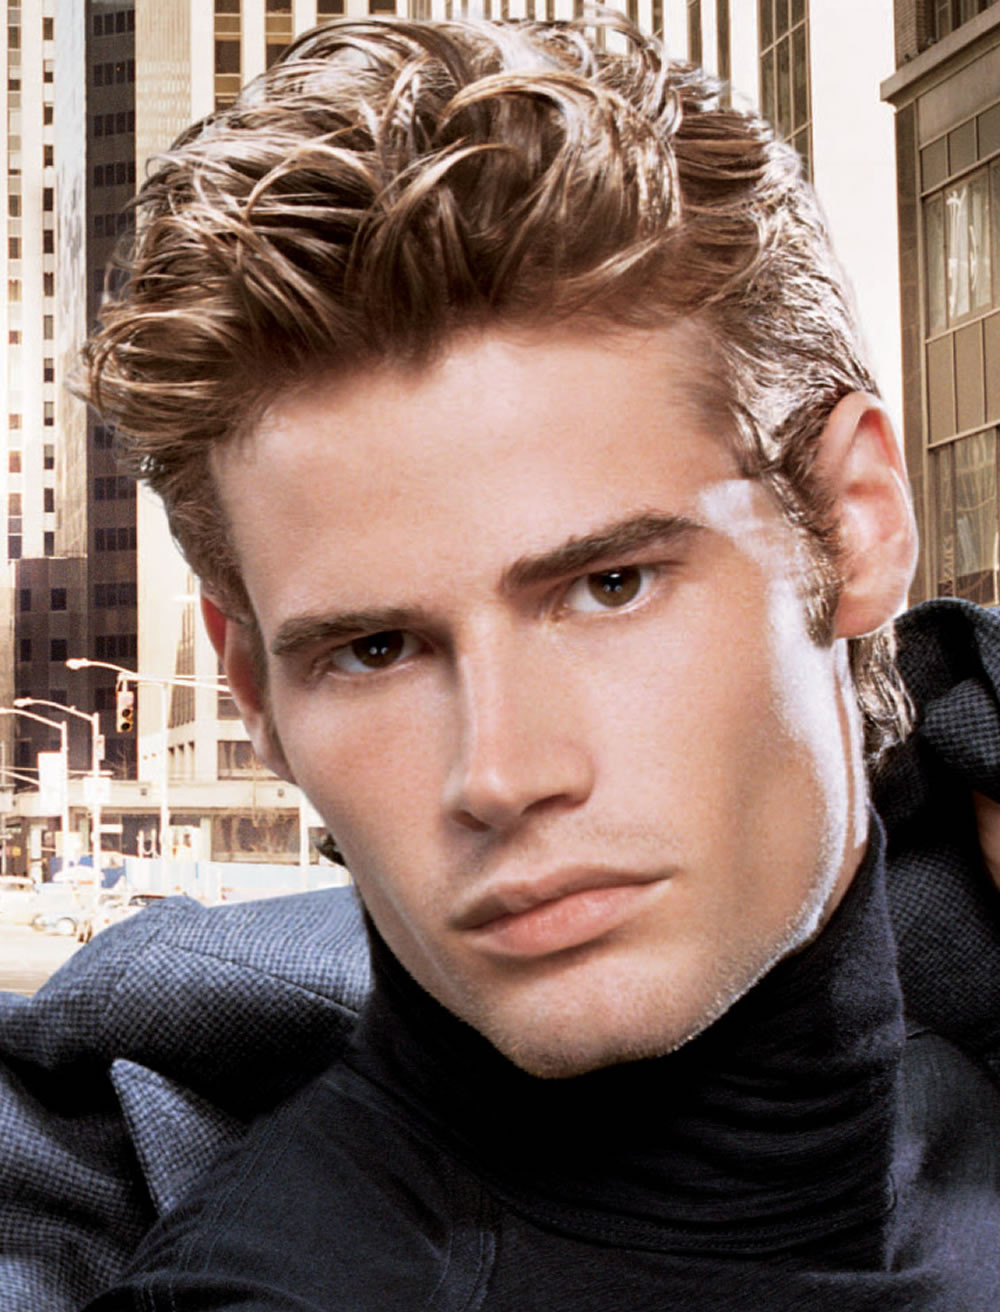 Hairstyles Male  Top 20 Hairstyles for Men 2018 – Best Haircut Ideas for